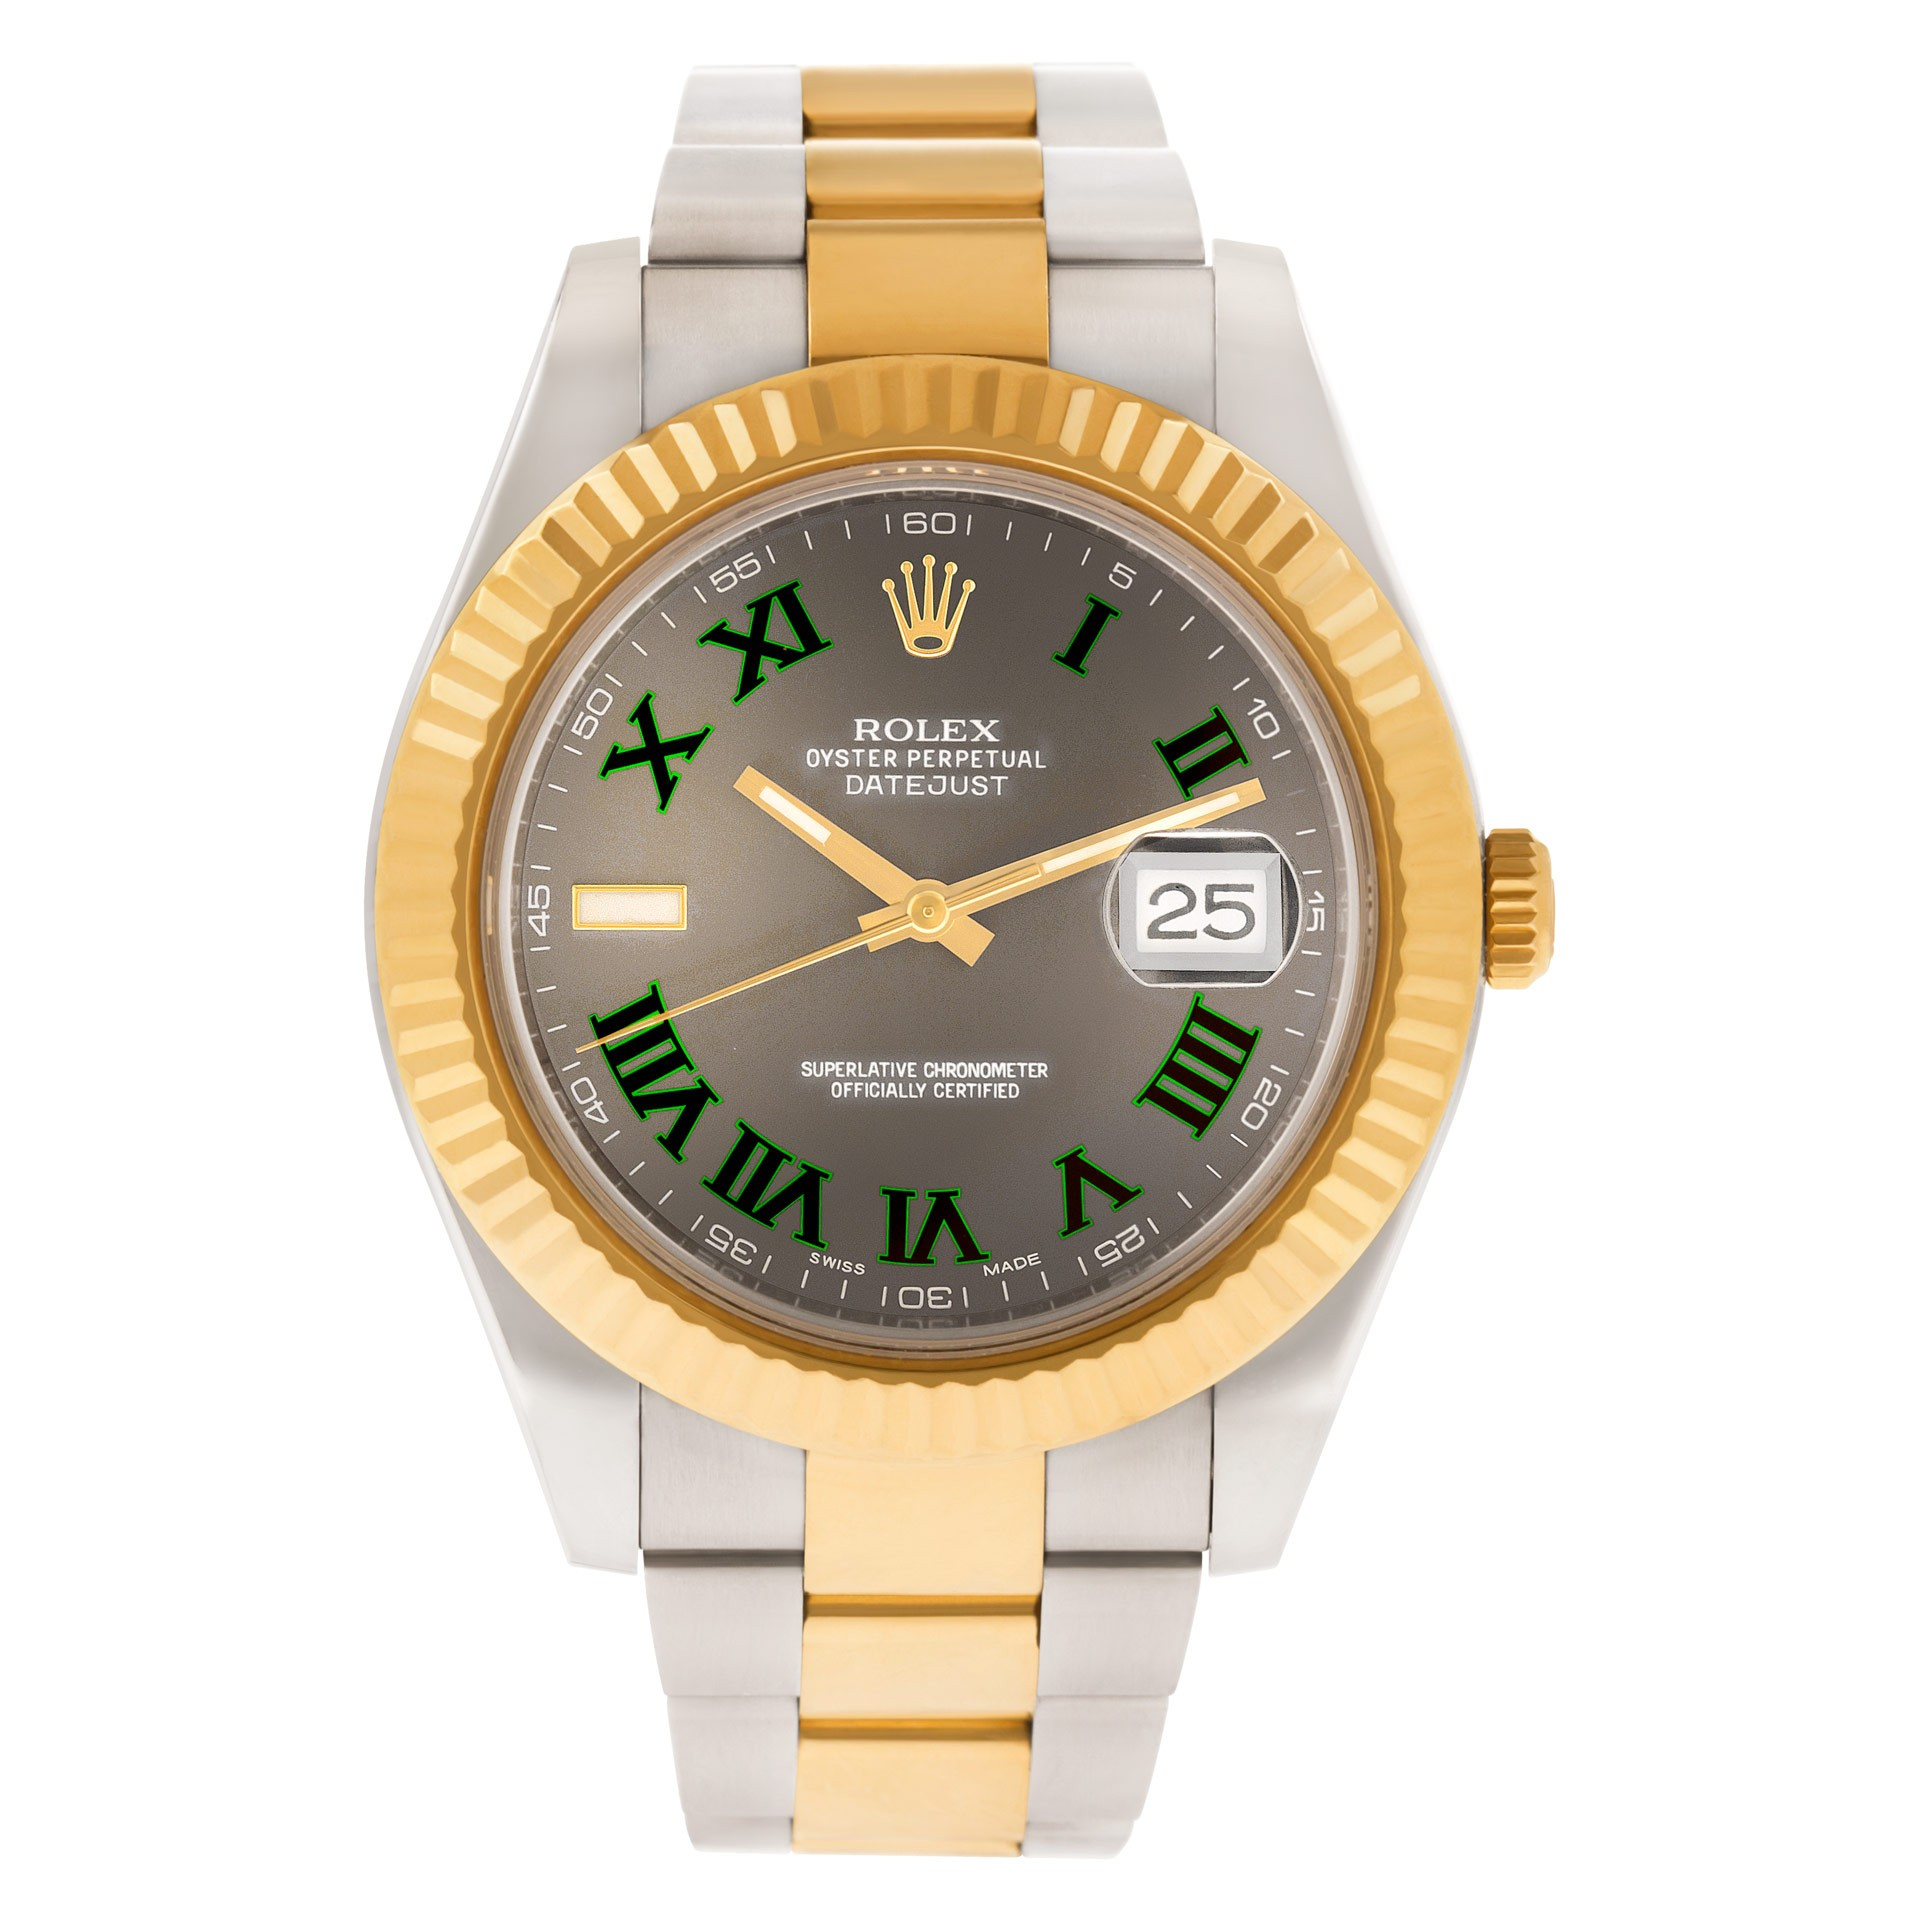 Green Rolex Watches: Datejust II 116333